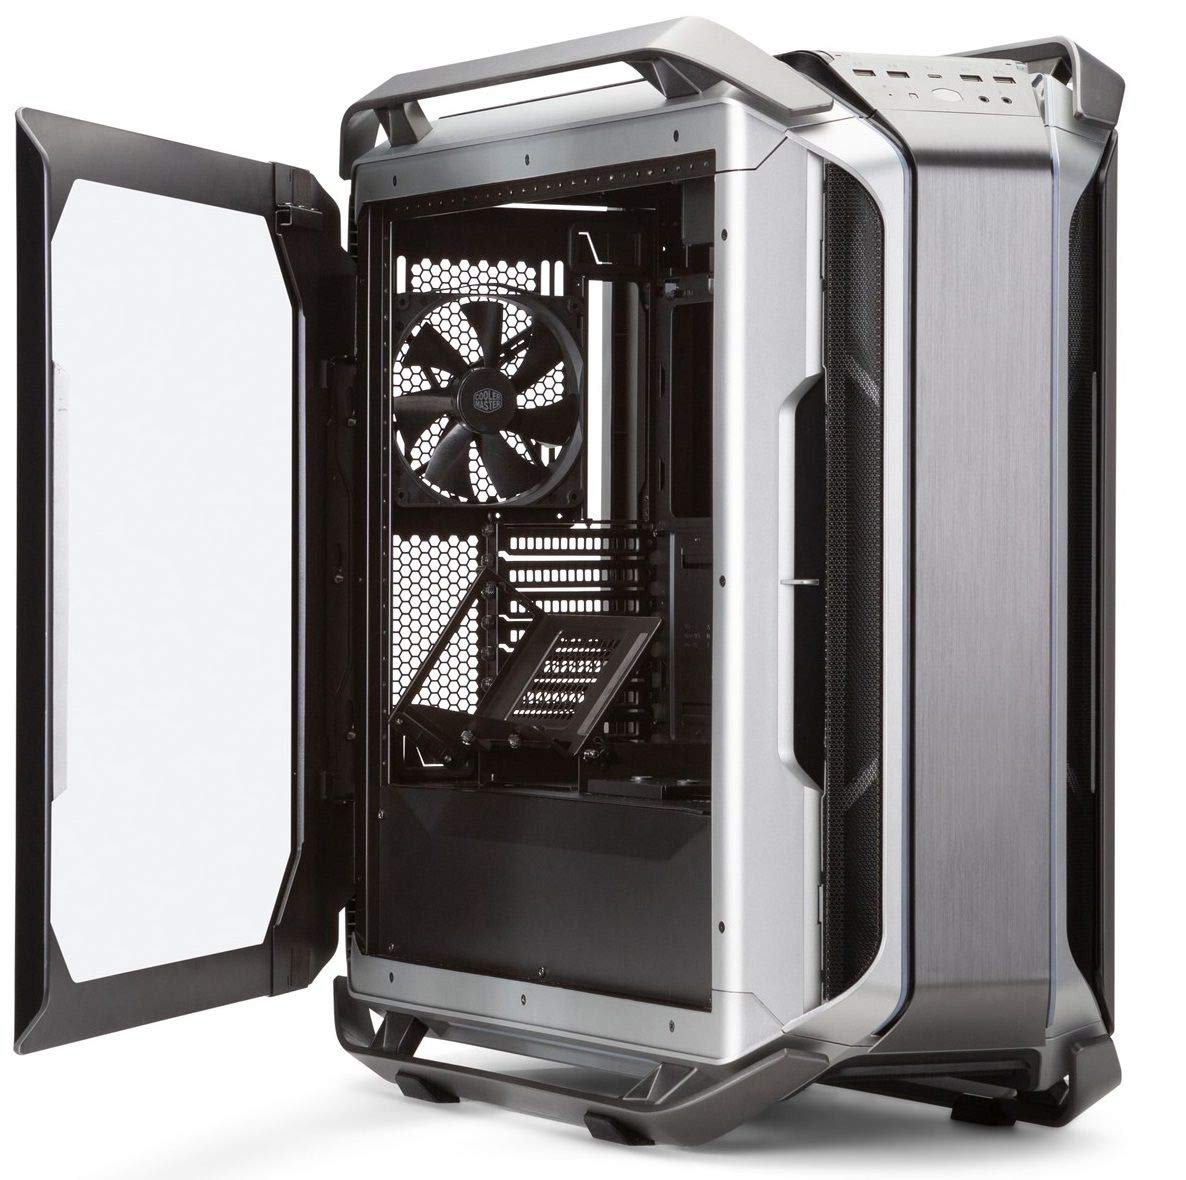 COOLER MASTER COSMOS C700M ARGB CURVED TEMPERED GLASS E-ATX CASING